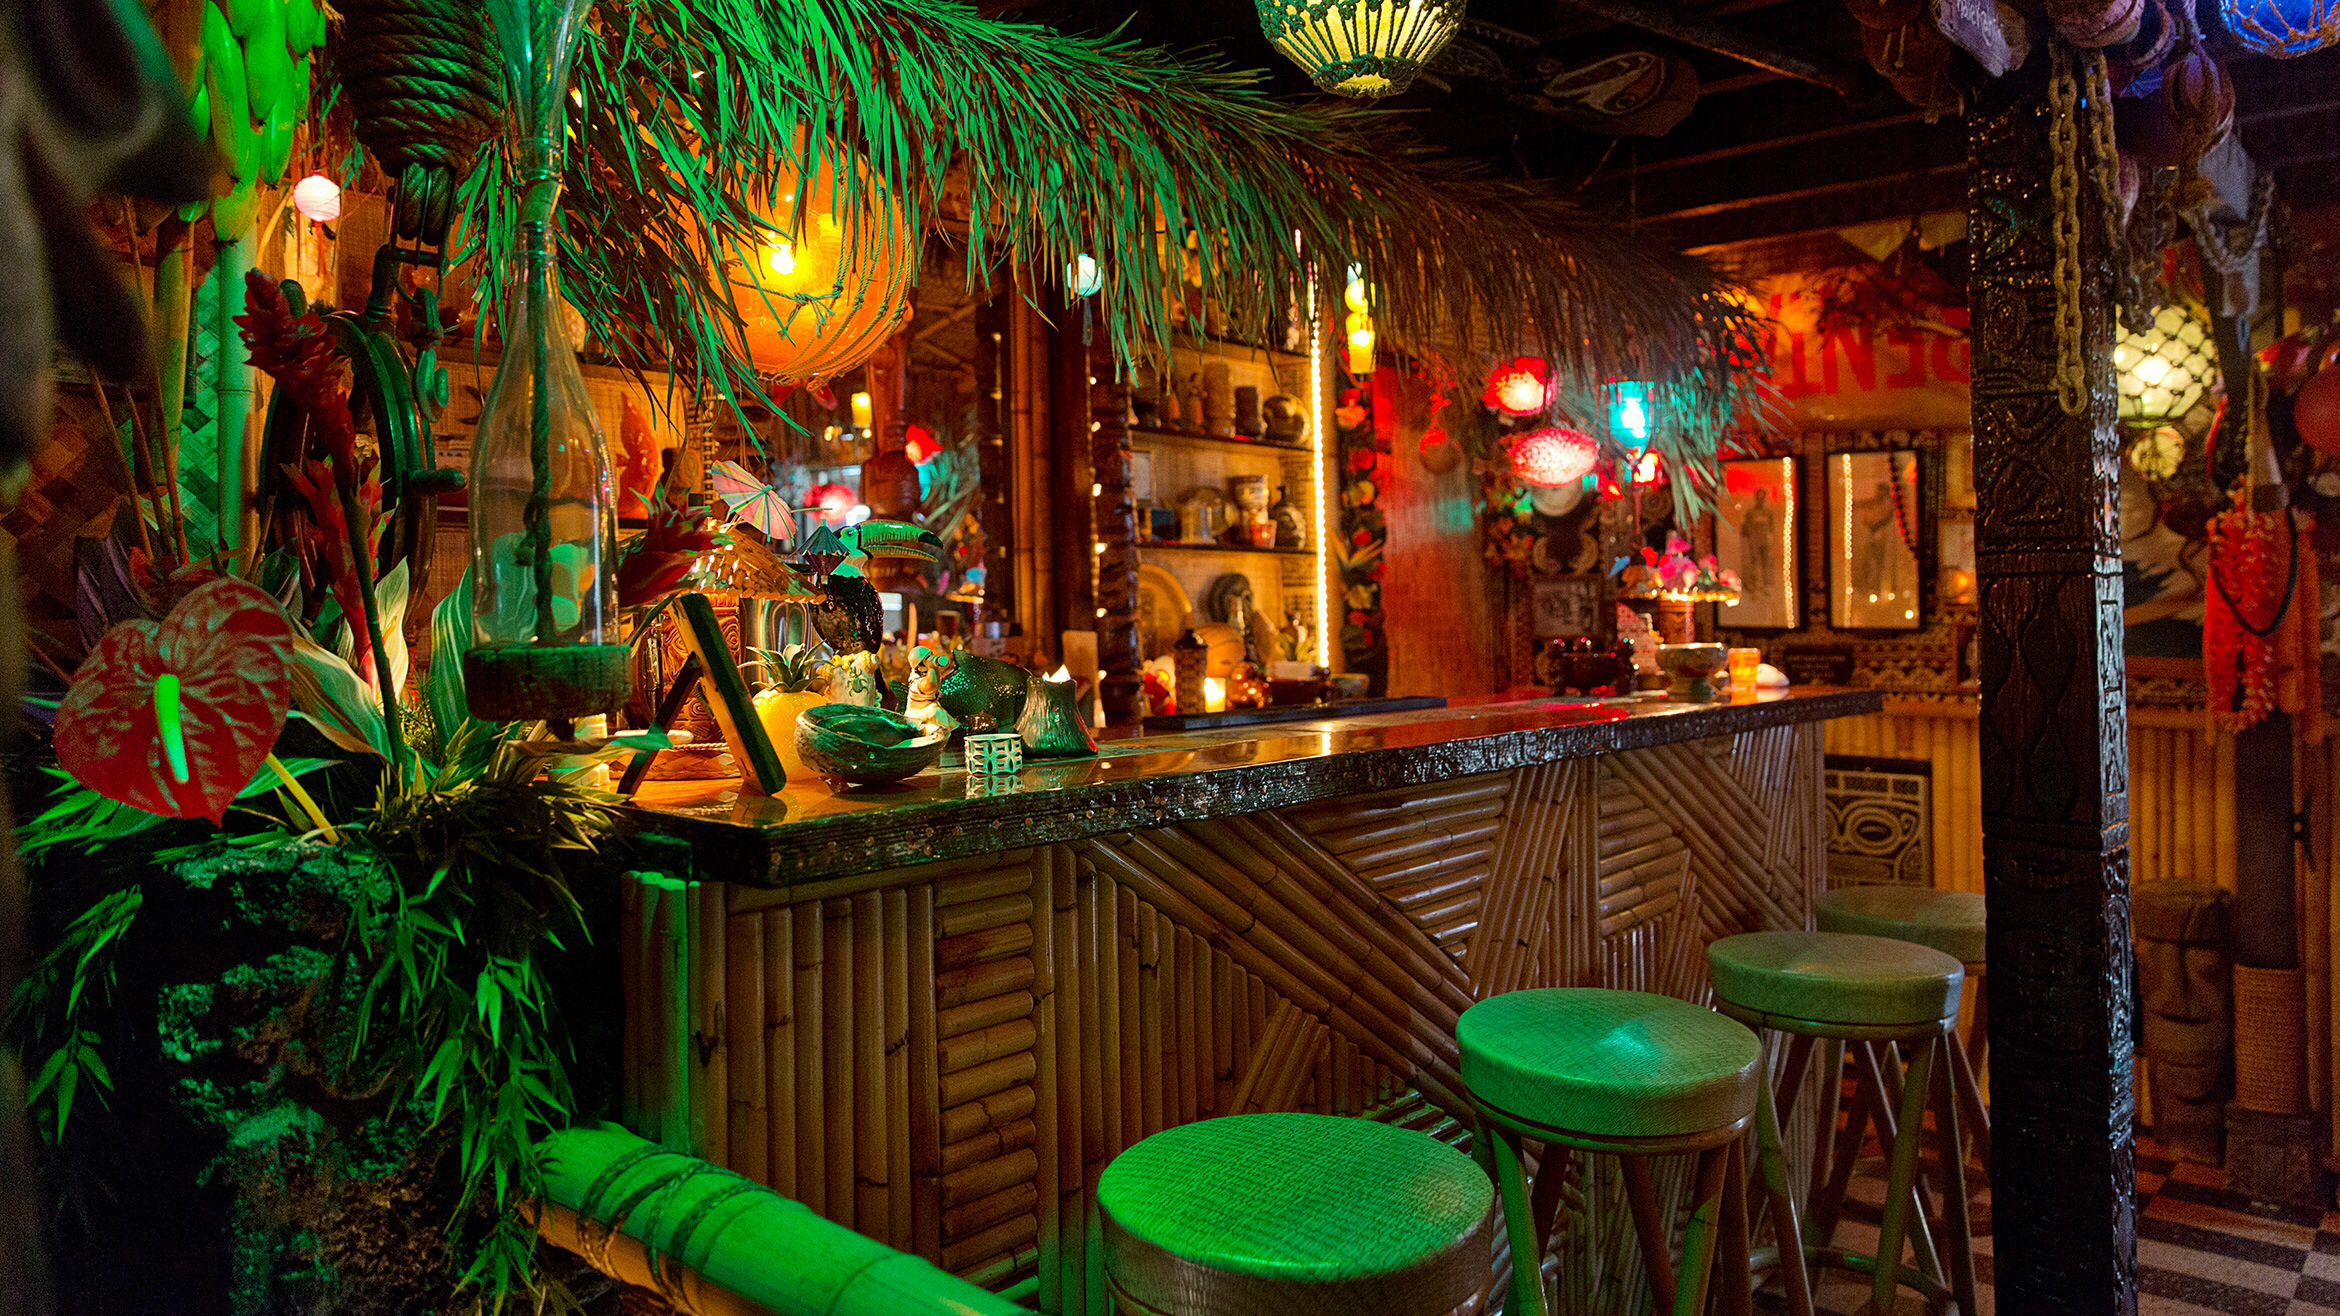 Ulenhoffer's | Tiki bar decor, Tiki decor, Tiki lounge